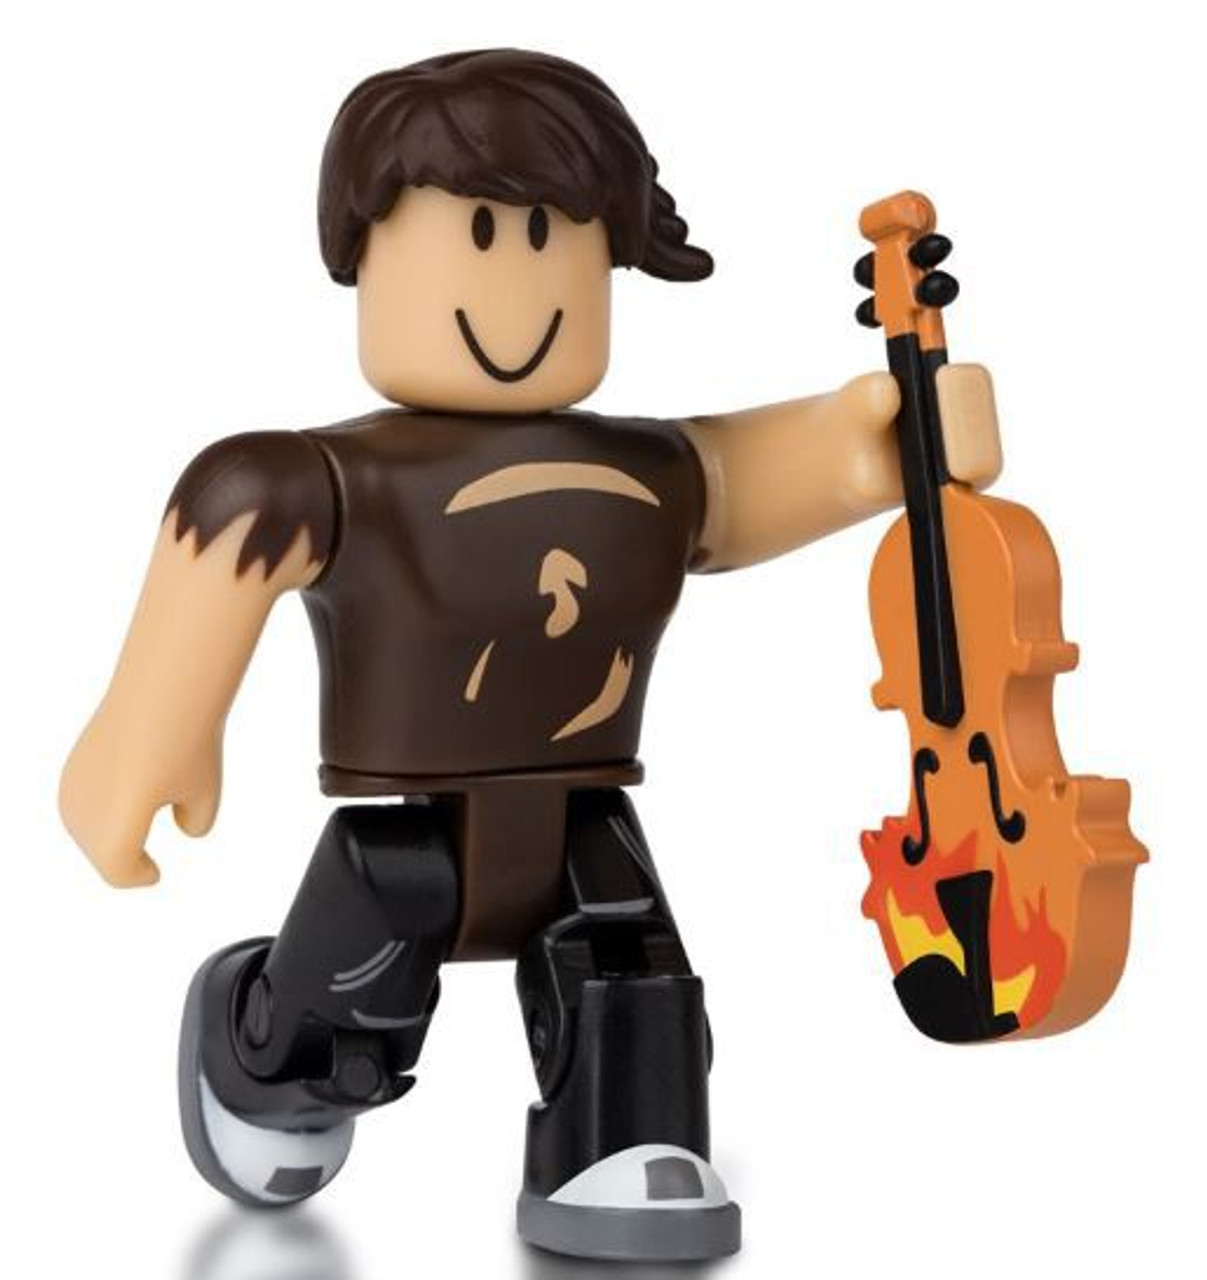 Roblox RoCitizens: Hard Times Henry Minifigure [No Code Loose]